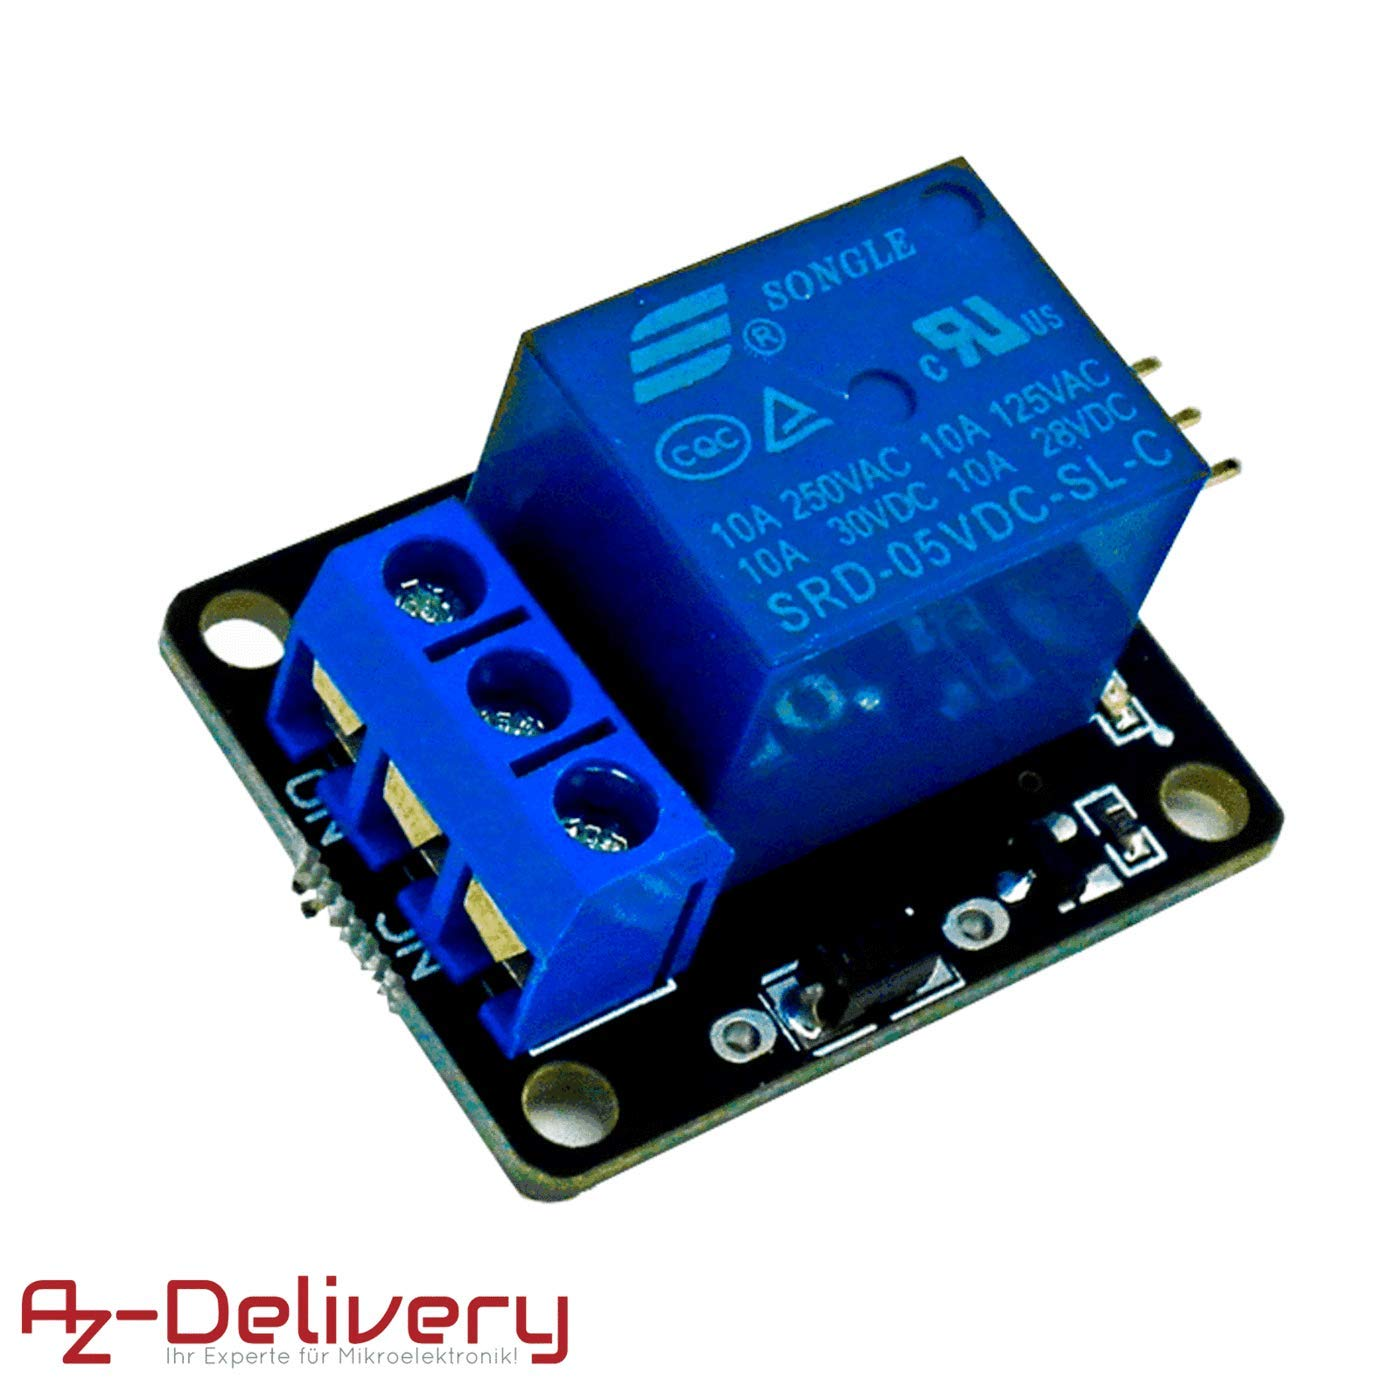 AZDelivery ⭐⭐⭐⭐⭐ 5 x KY-019 1-Channel 5V Relay Module with Optocoupler High Level Trigger for Arduino including eBook